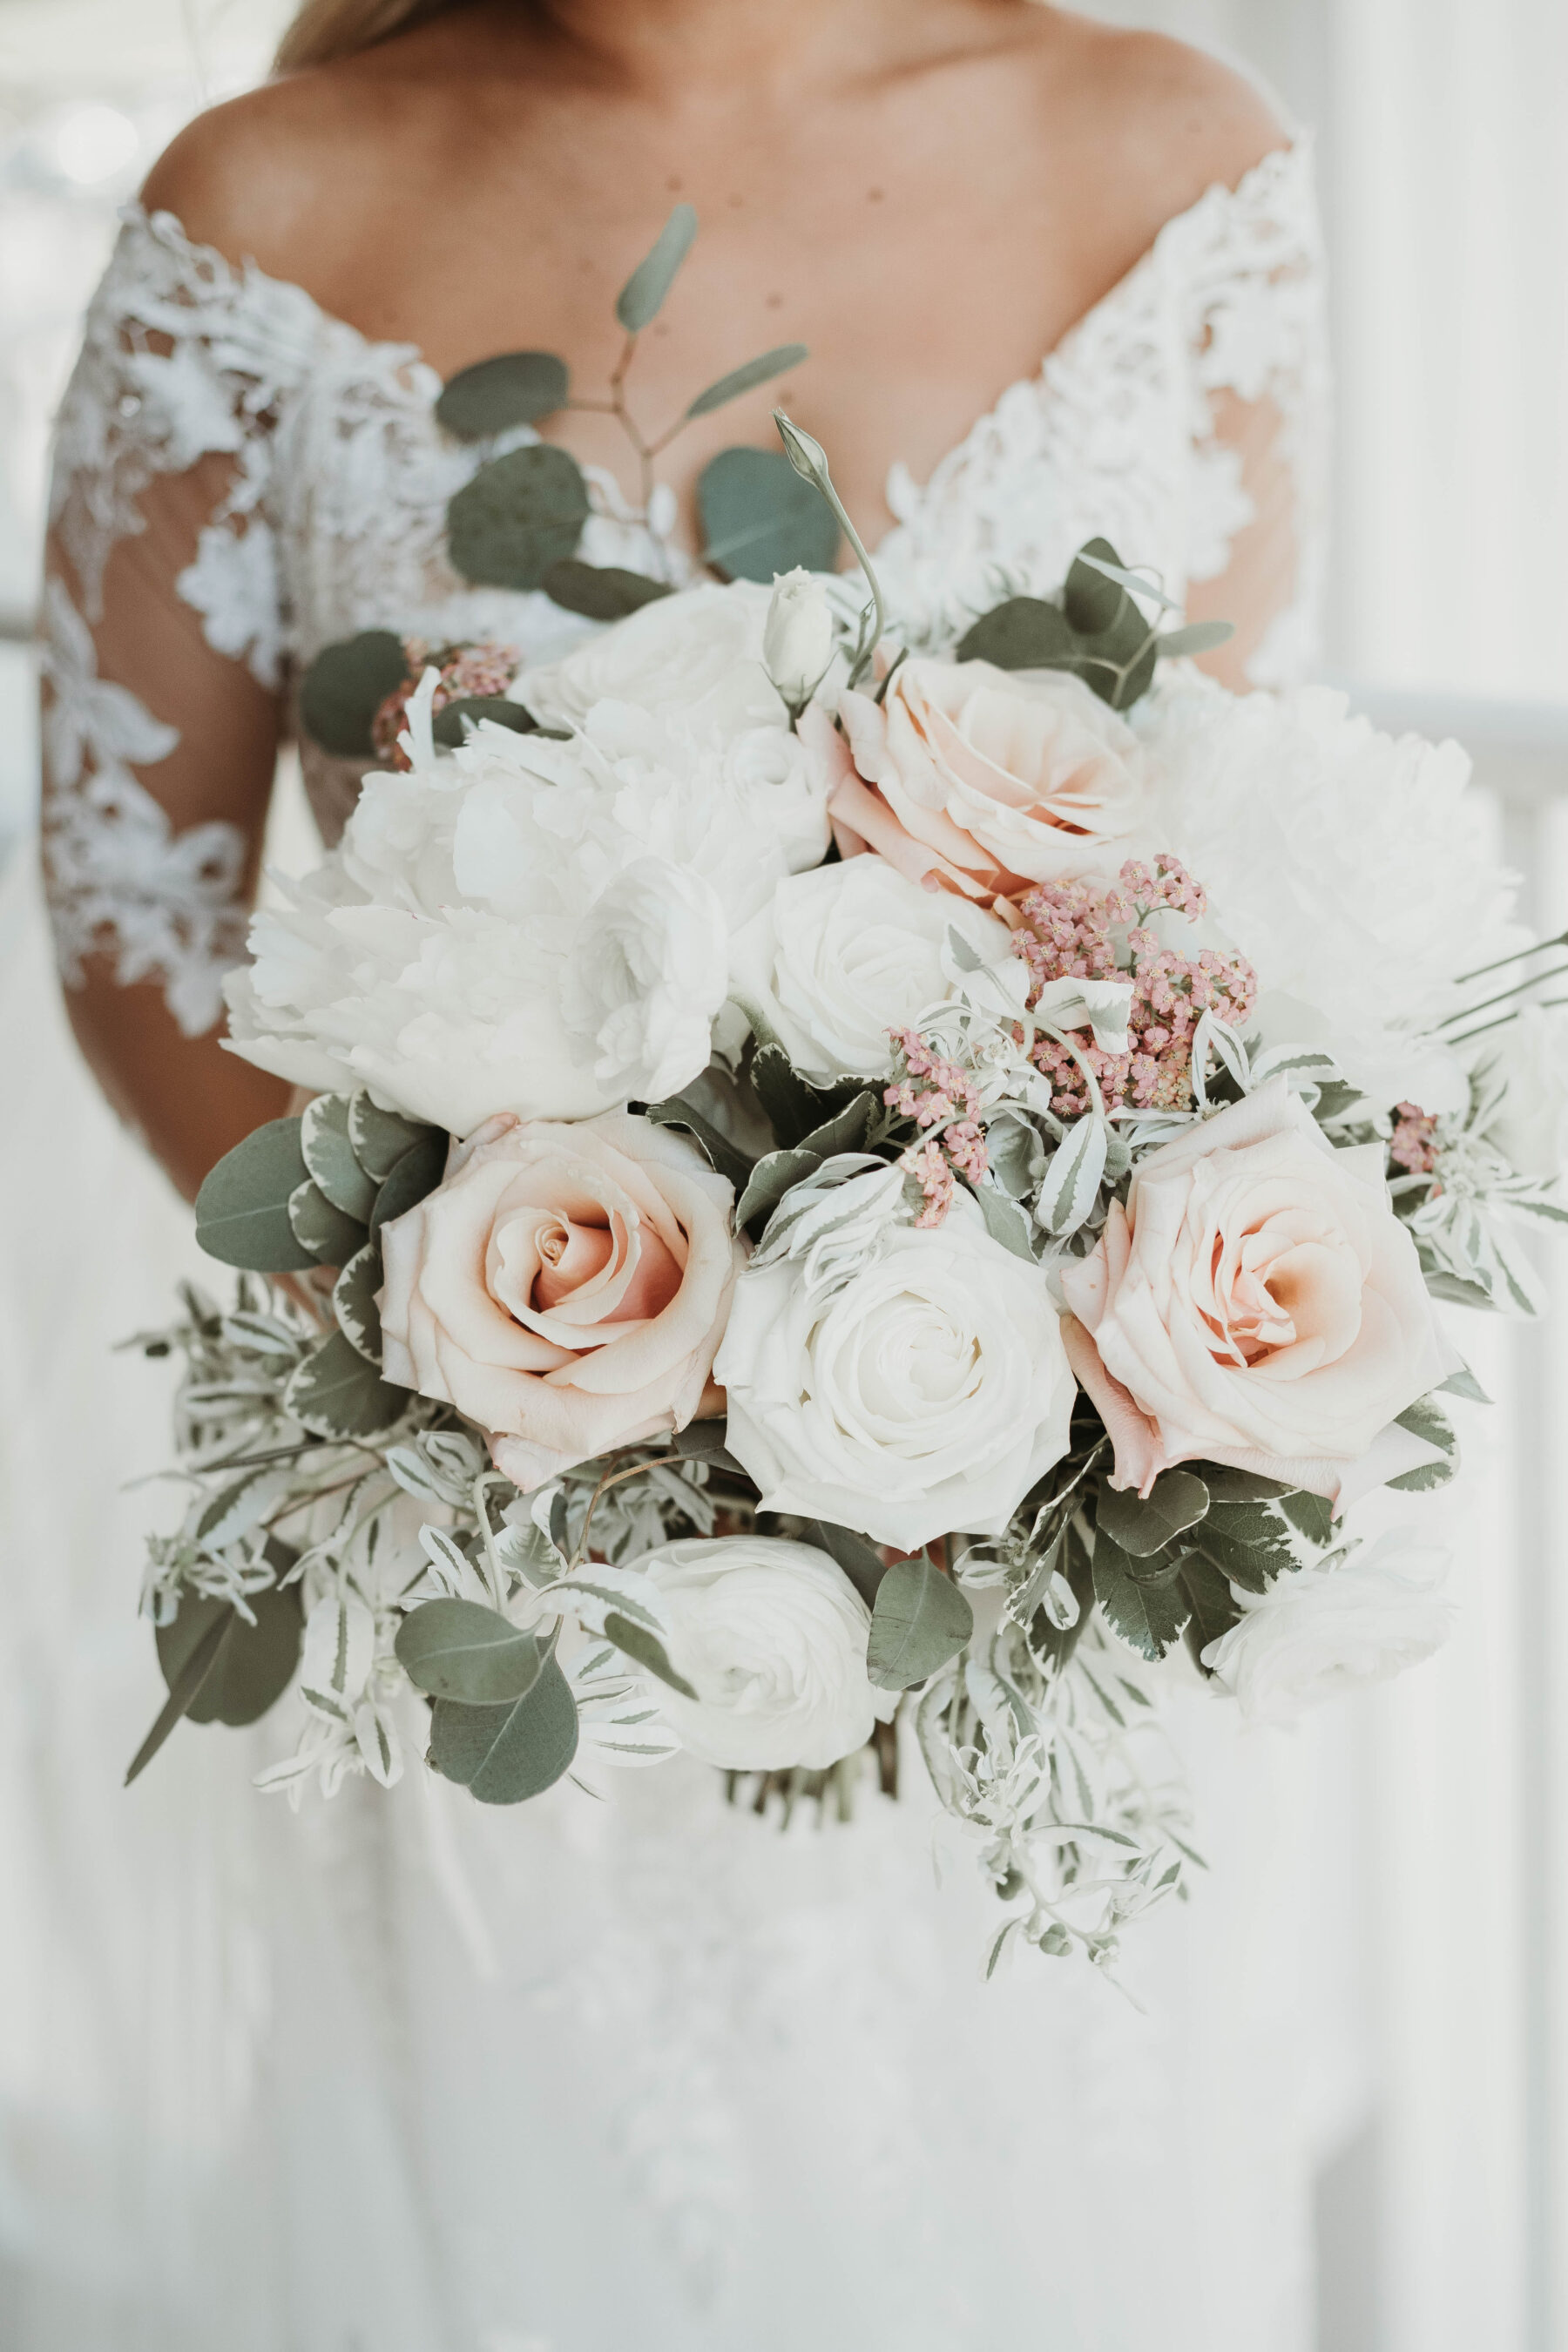 Blush and white wedding bouquet: Romantic Country Club Soiree by Juniper Weddings featured on Nashville Bride Guide